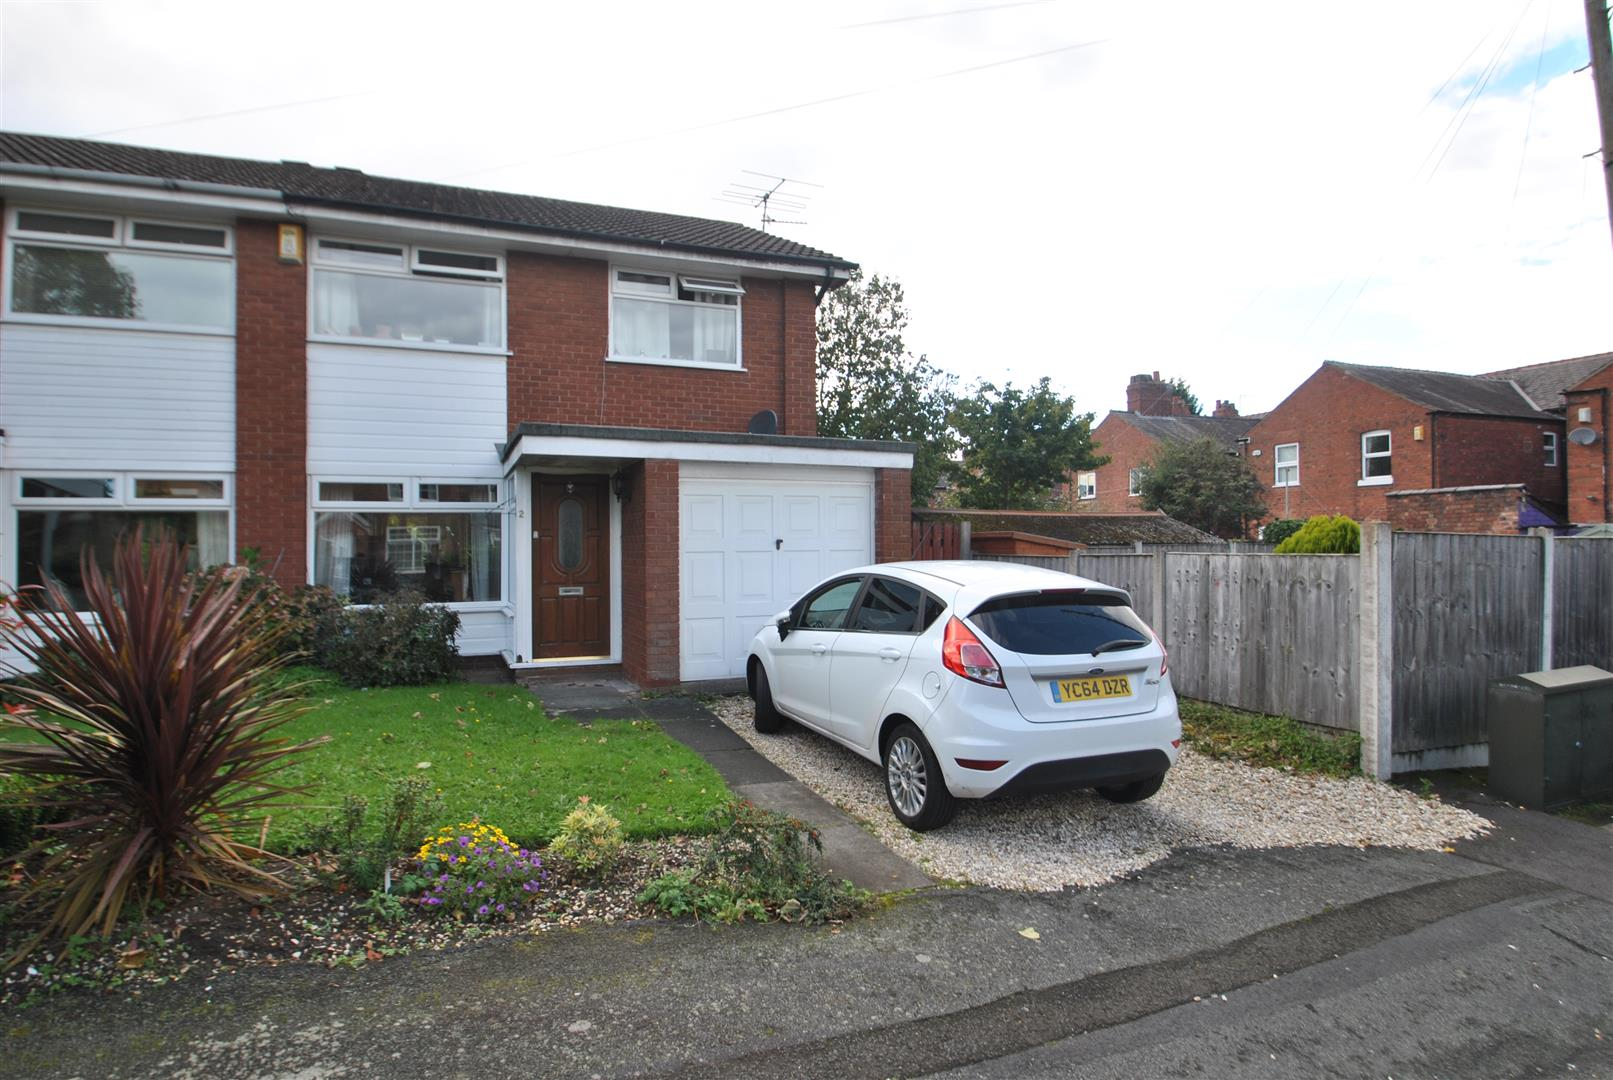 3 Bedrooms Semi Detached House for sale in Algernon Street, STOCKTON HEATH, WARRINGTON, WA4